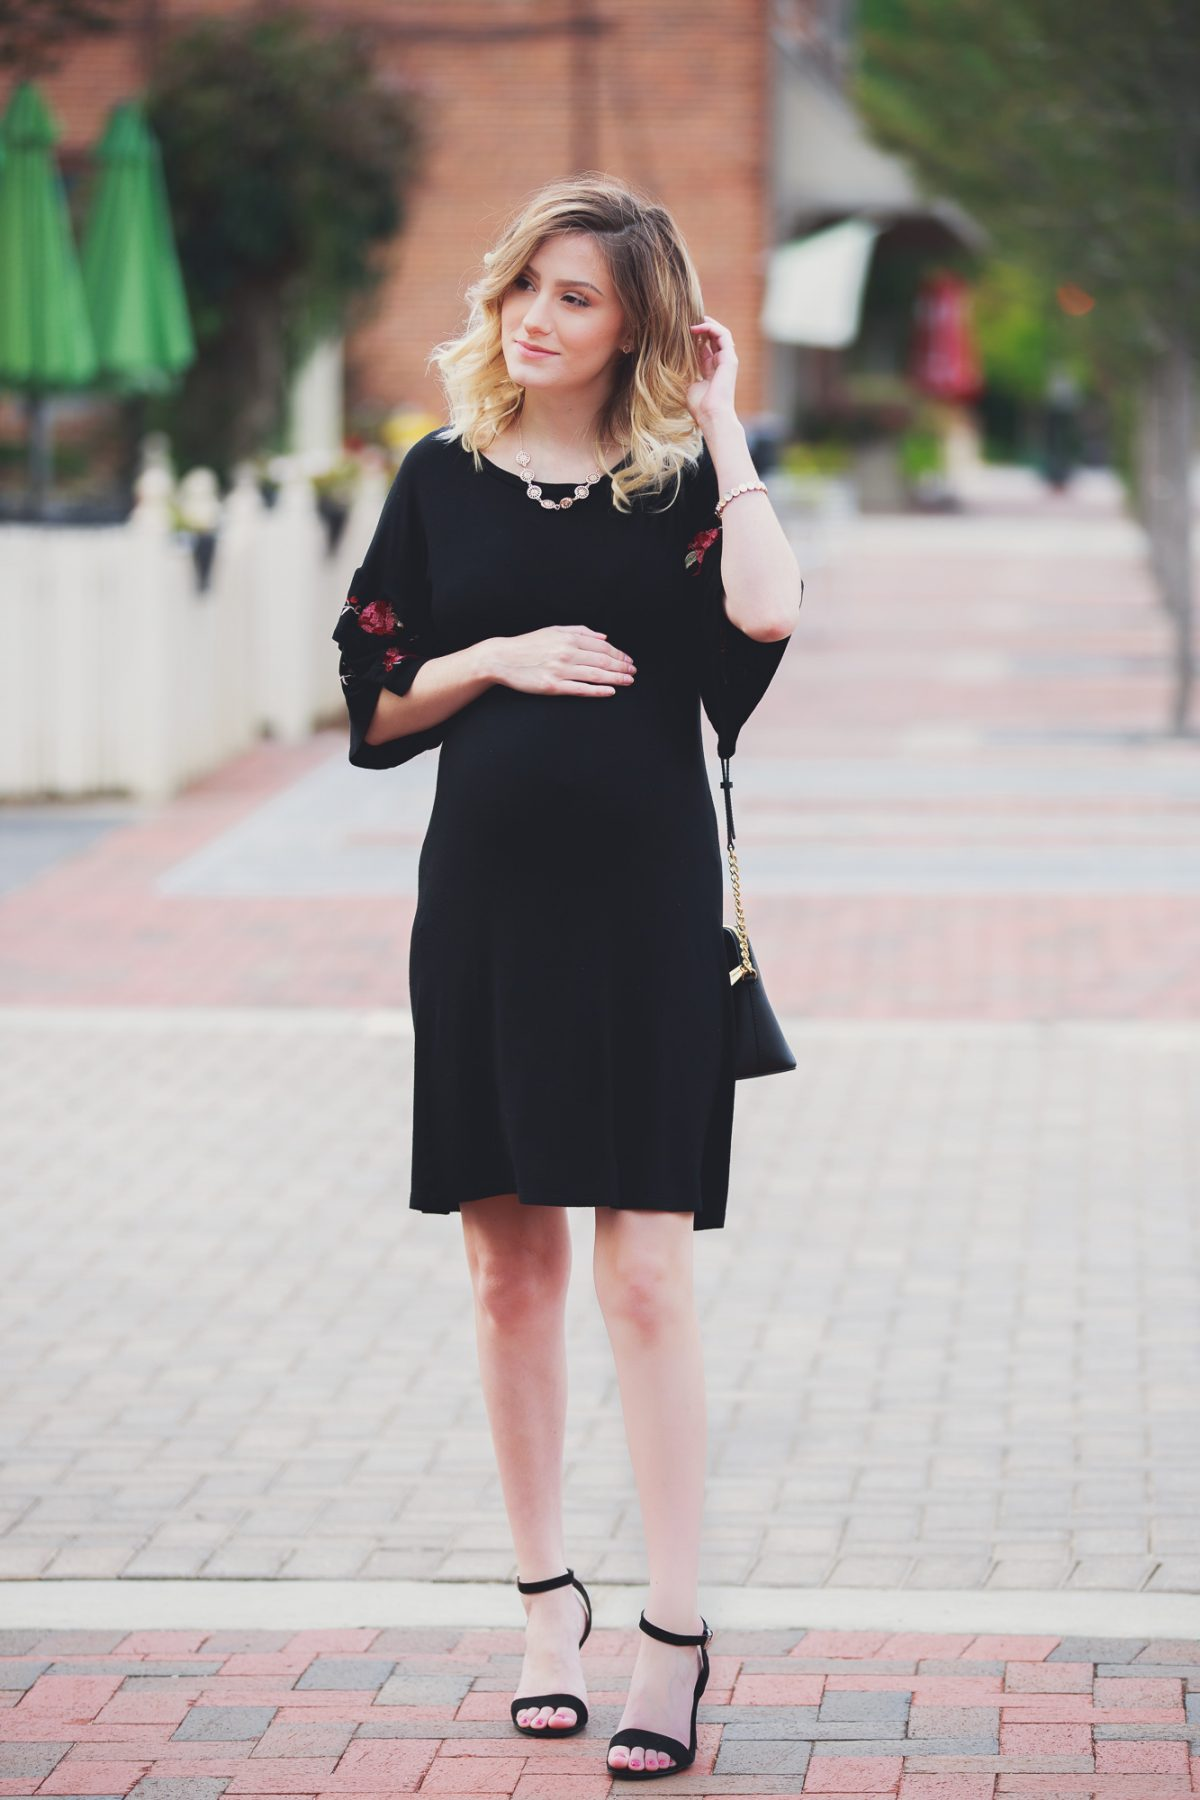 Fashion, lifestyle, and beauty blogger and vlogger Jessica Linn wearing a black ruffle sleeve dress with floral embroidery on the sleeves from Francesca's. Also carrying a Michael Kors purse and black heels from ASOS in Downtown Cary North Carolina.